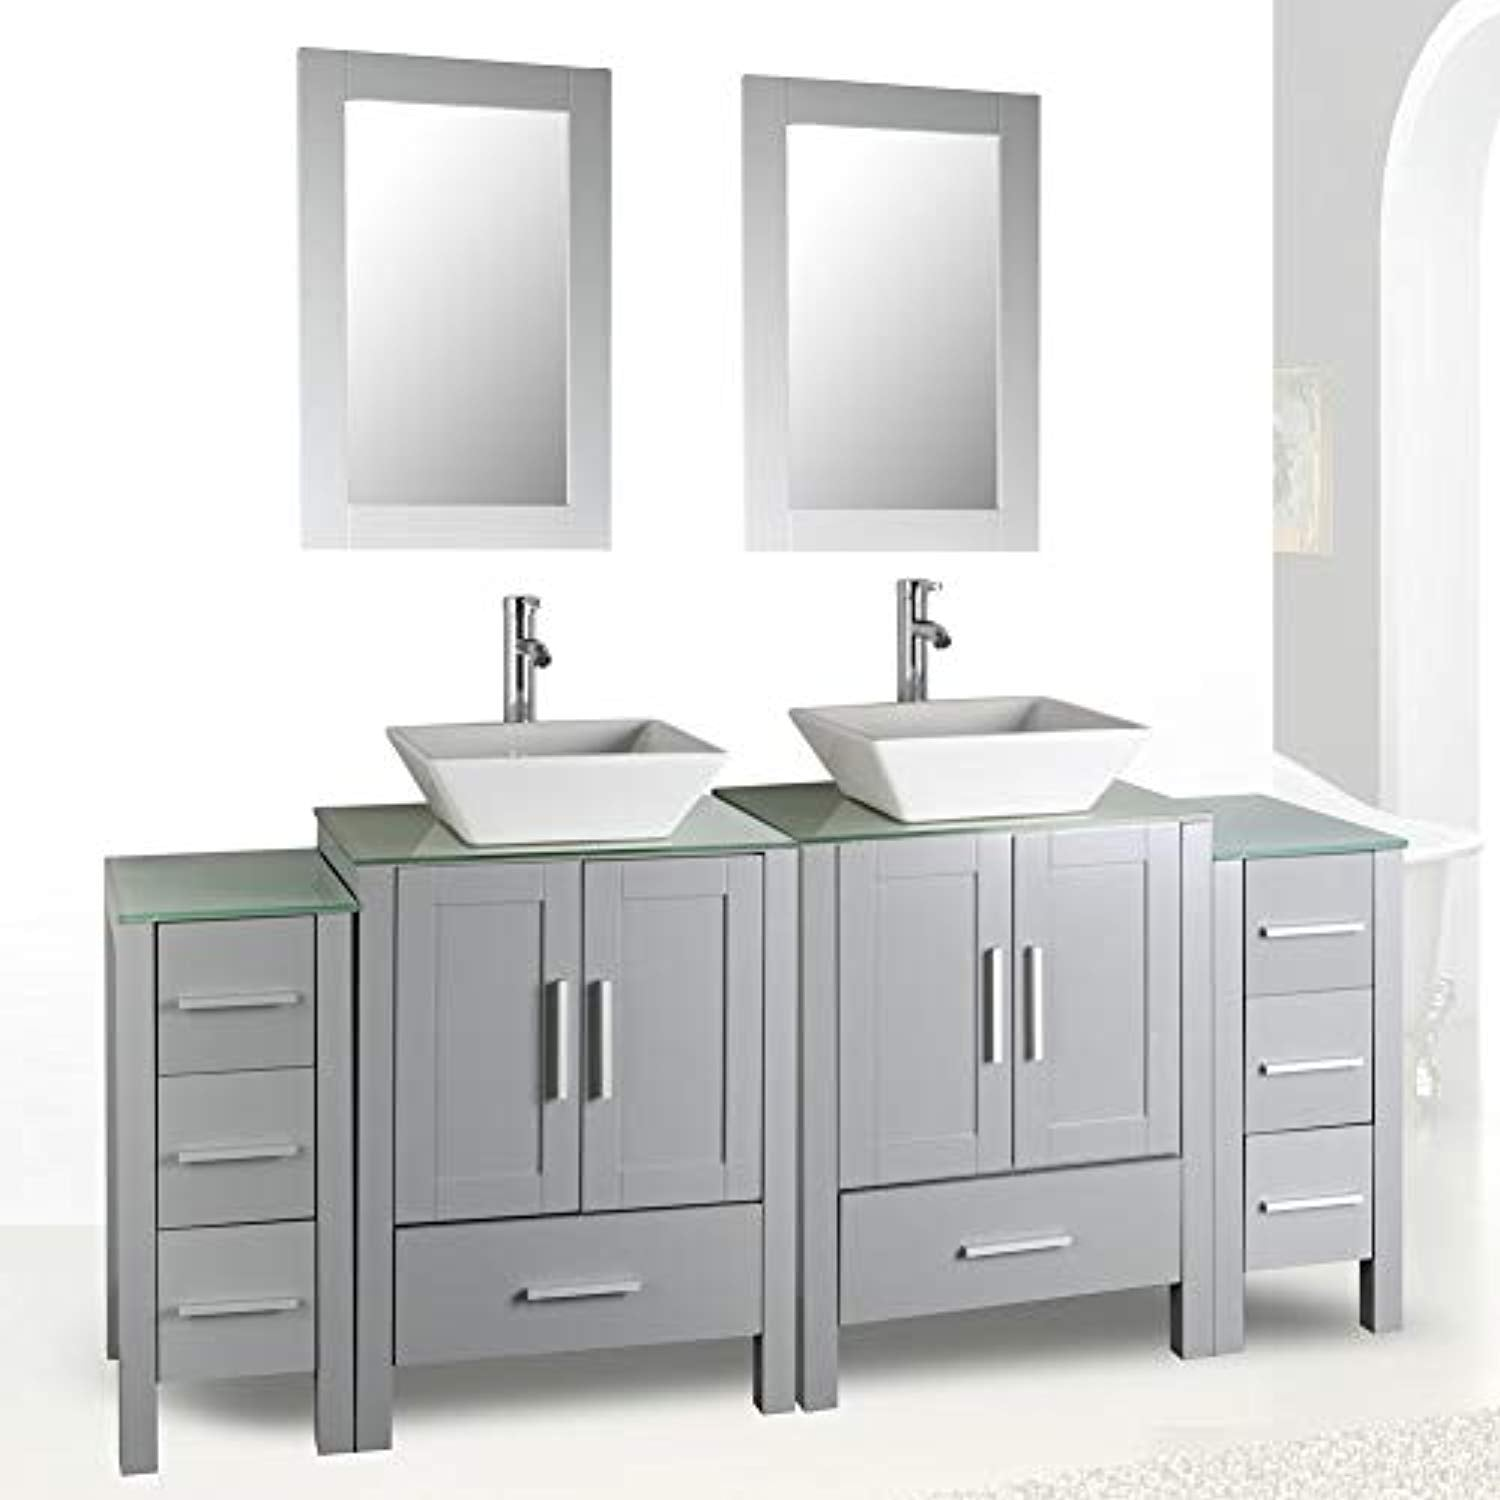 72 Double Sink Grey Bathroom Vanity Modern Design Glass Top W Mirror Ek Chic Home